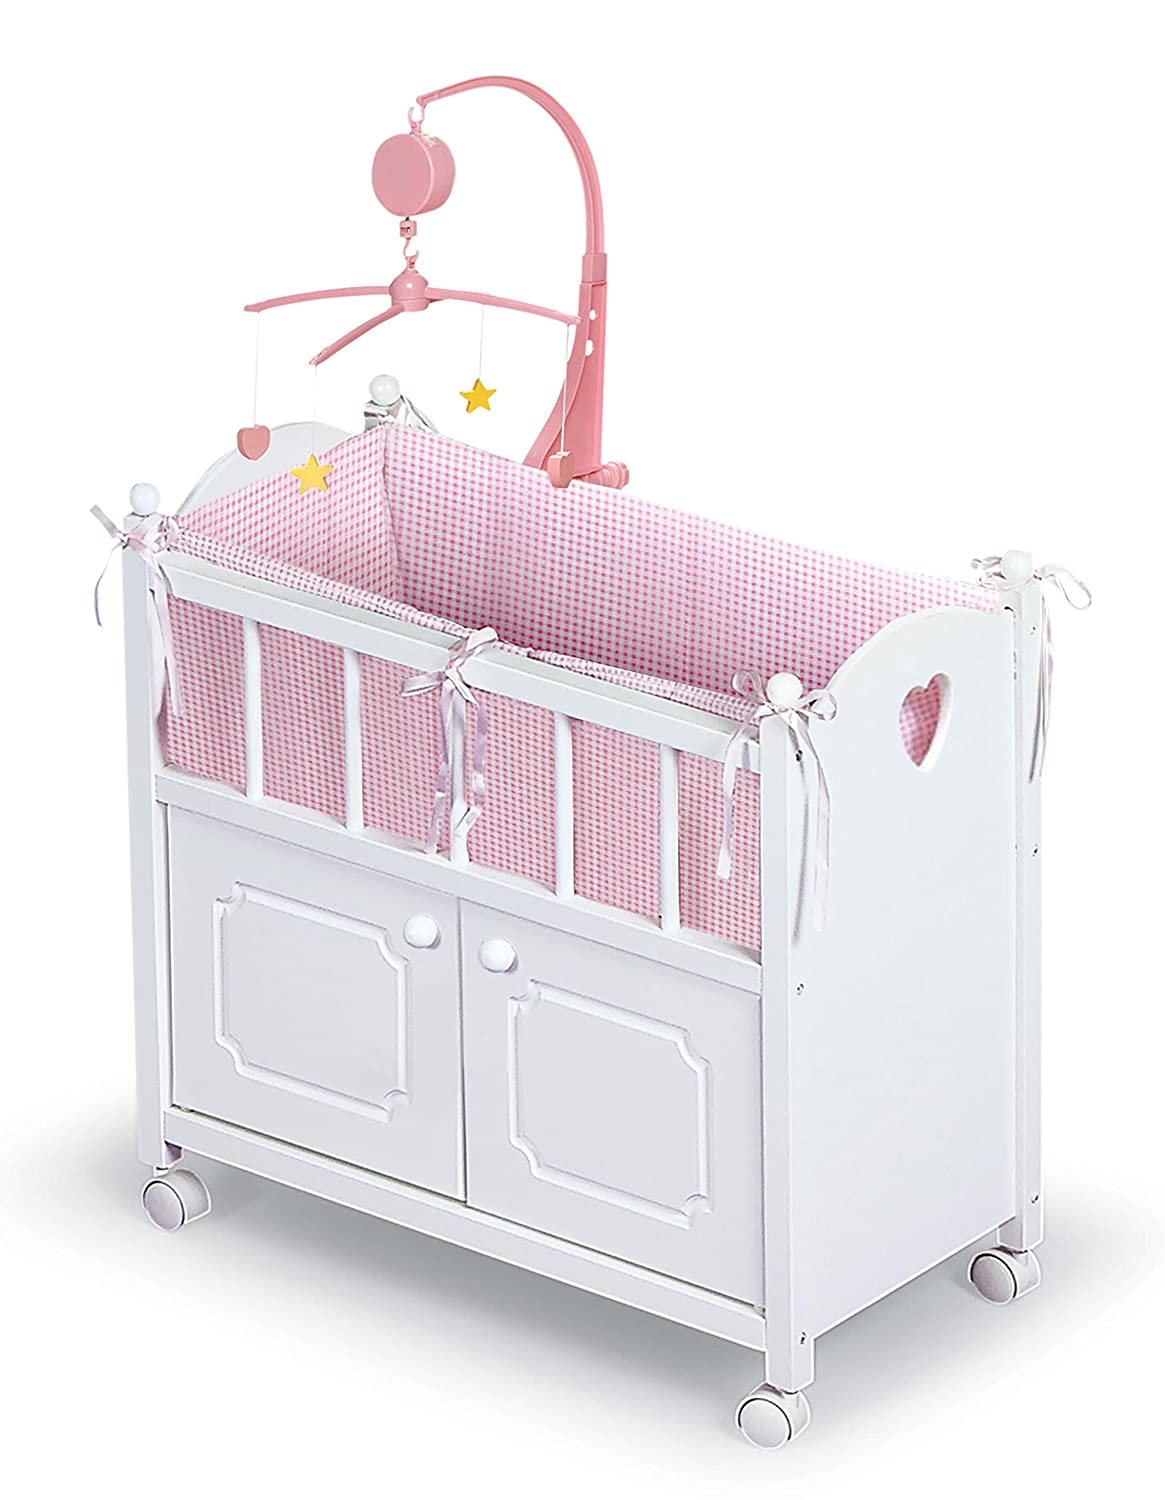 B0001X2XE2 Badger Basket Cabinet Doll Crib with Gingham Bedding, Musical Mobile, Wheels, and Free Personalization Kit (fits American Girl Dolls) 81z6dc276-L